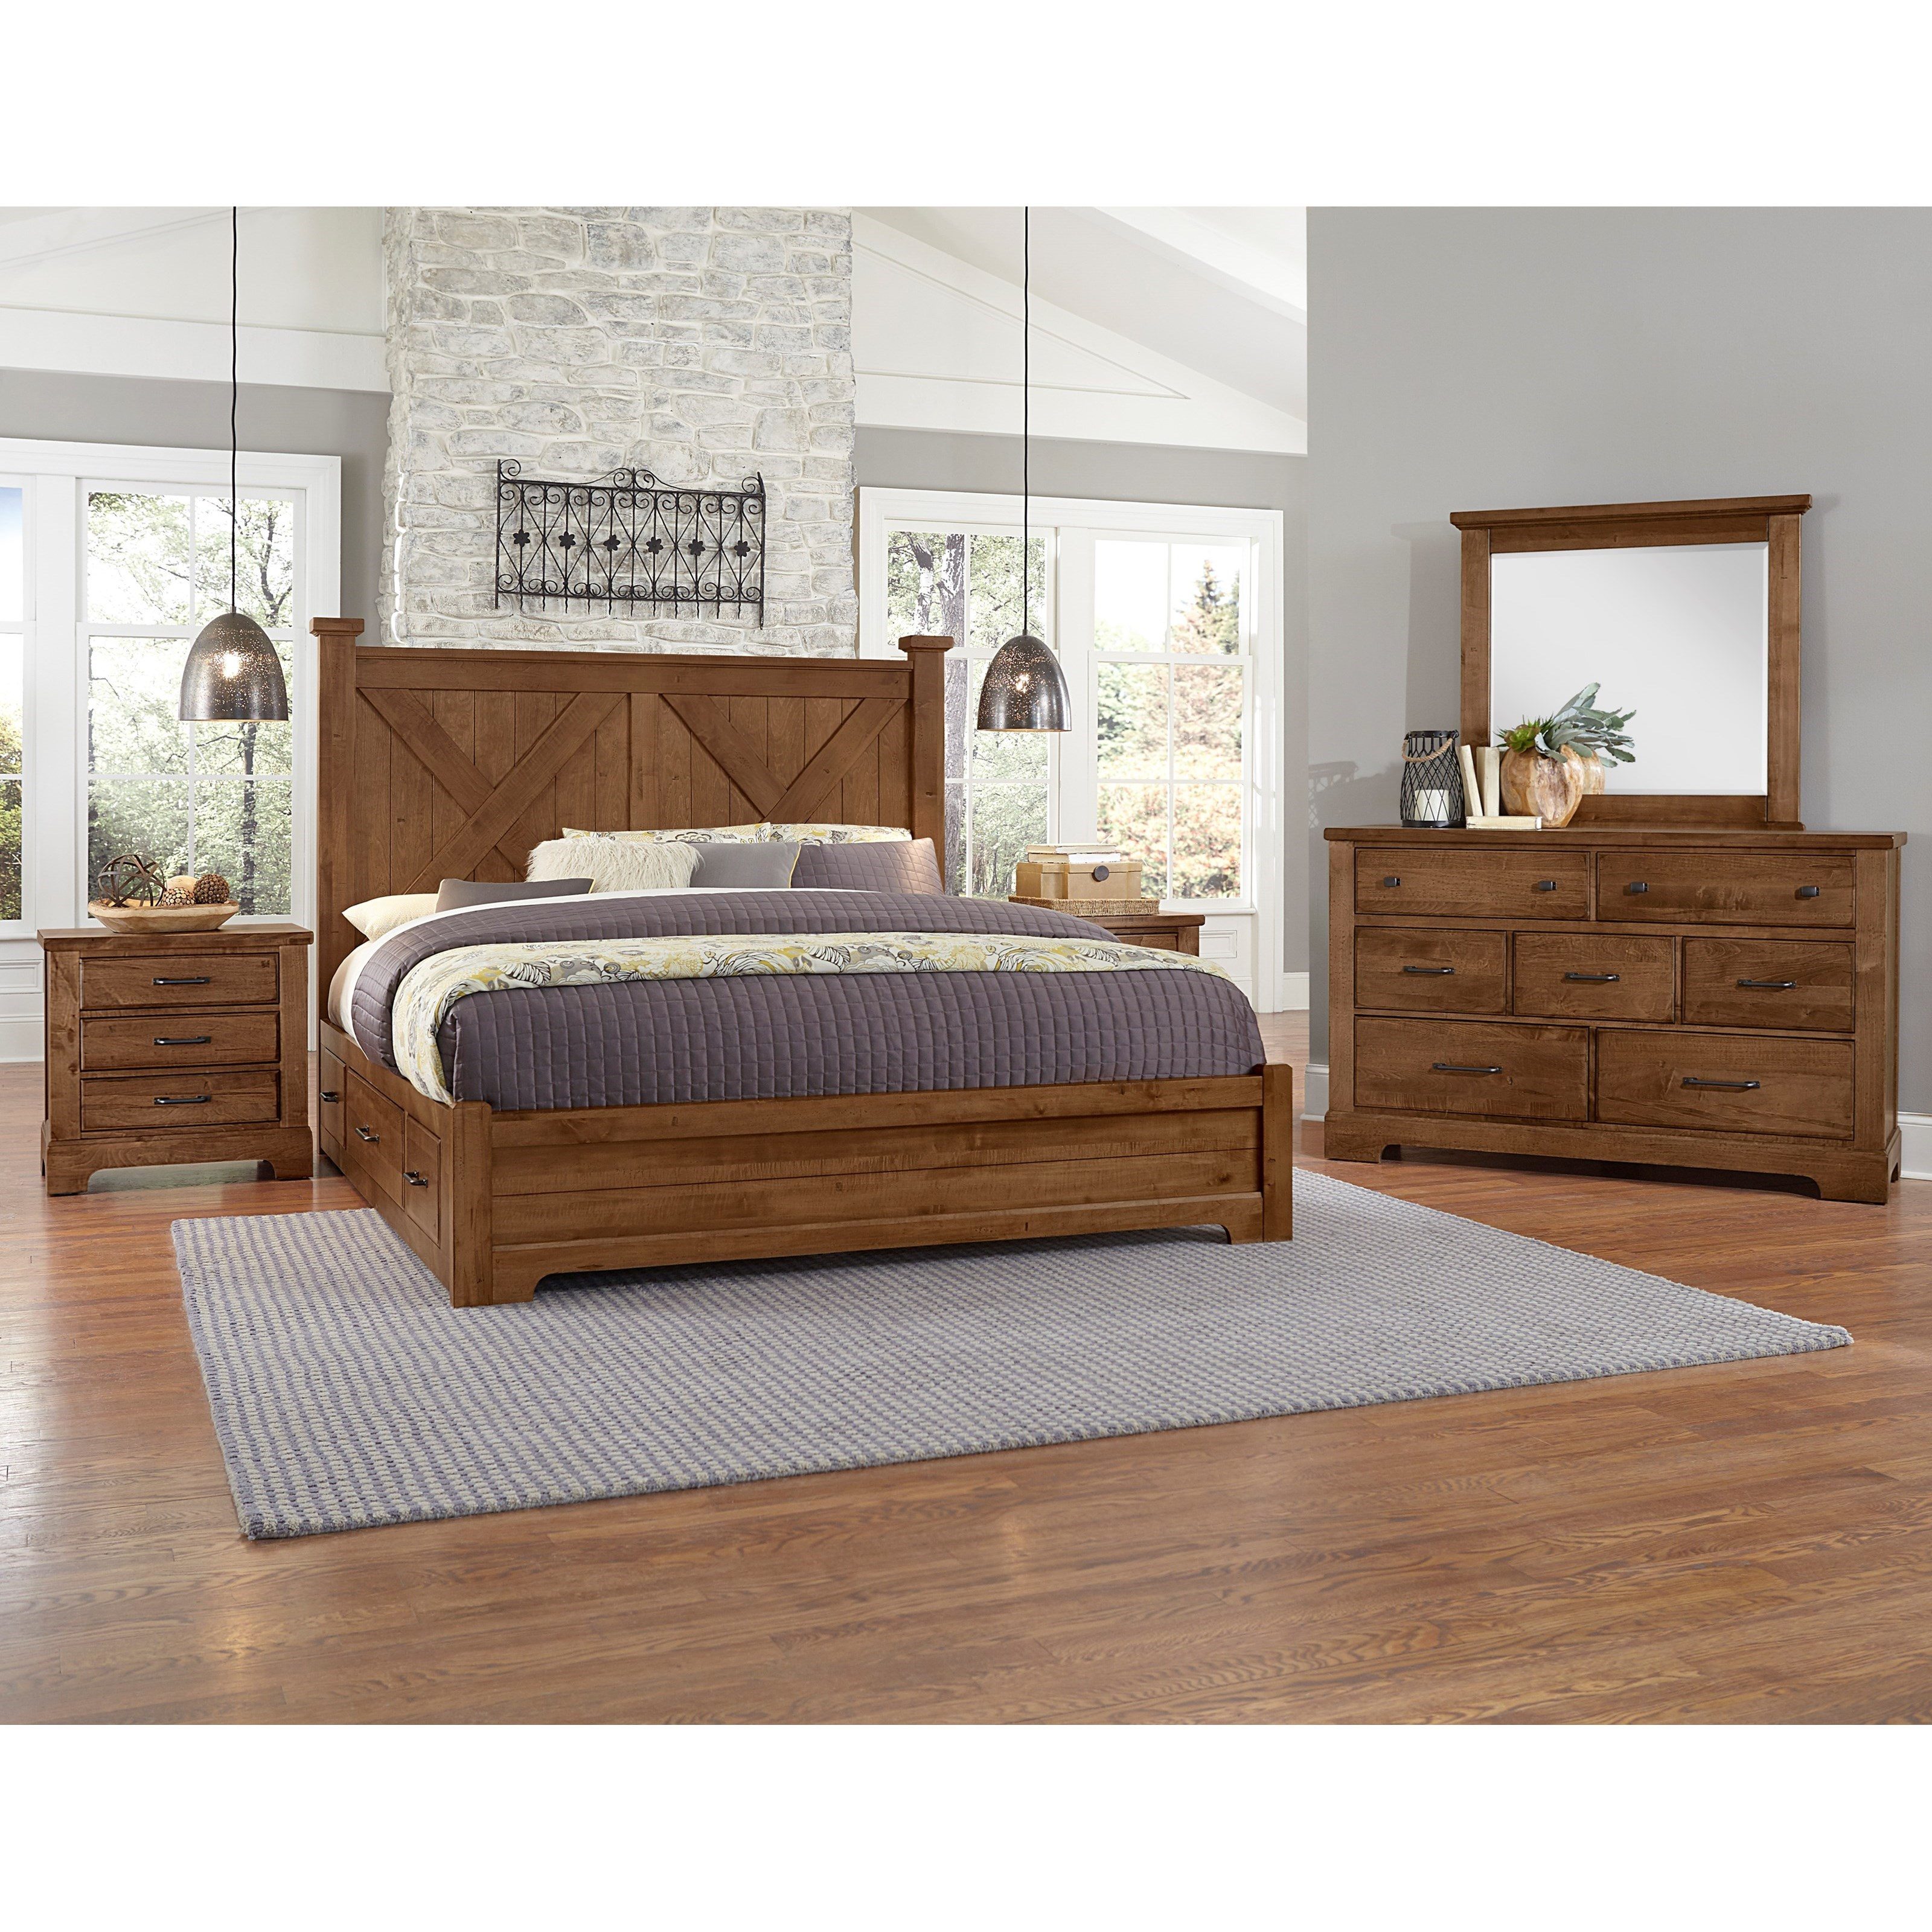 Cool Rustic King Bedroom Group by Artisan & Post at Zak's Home